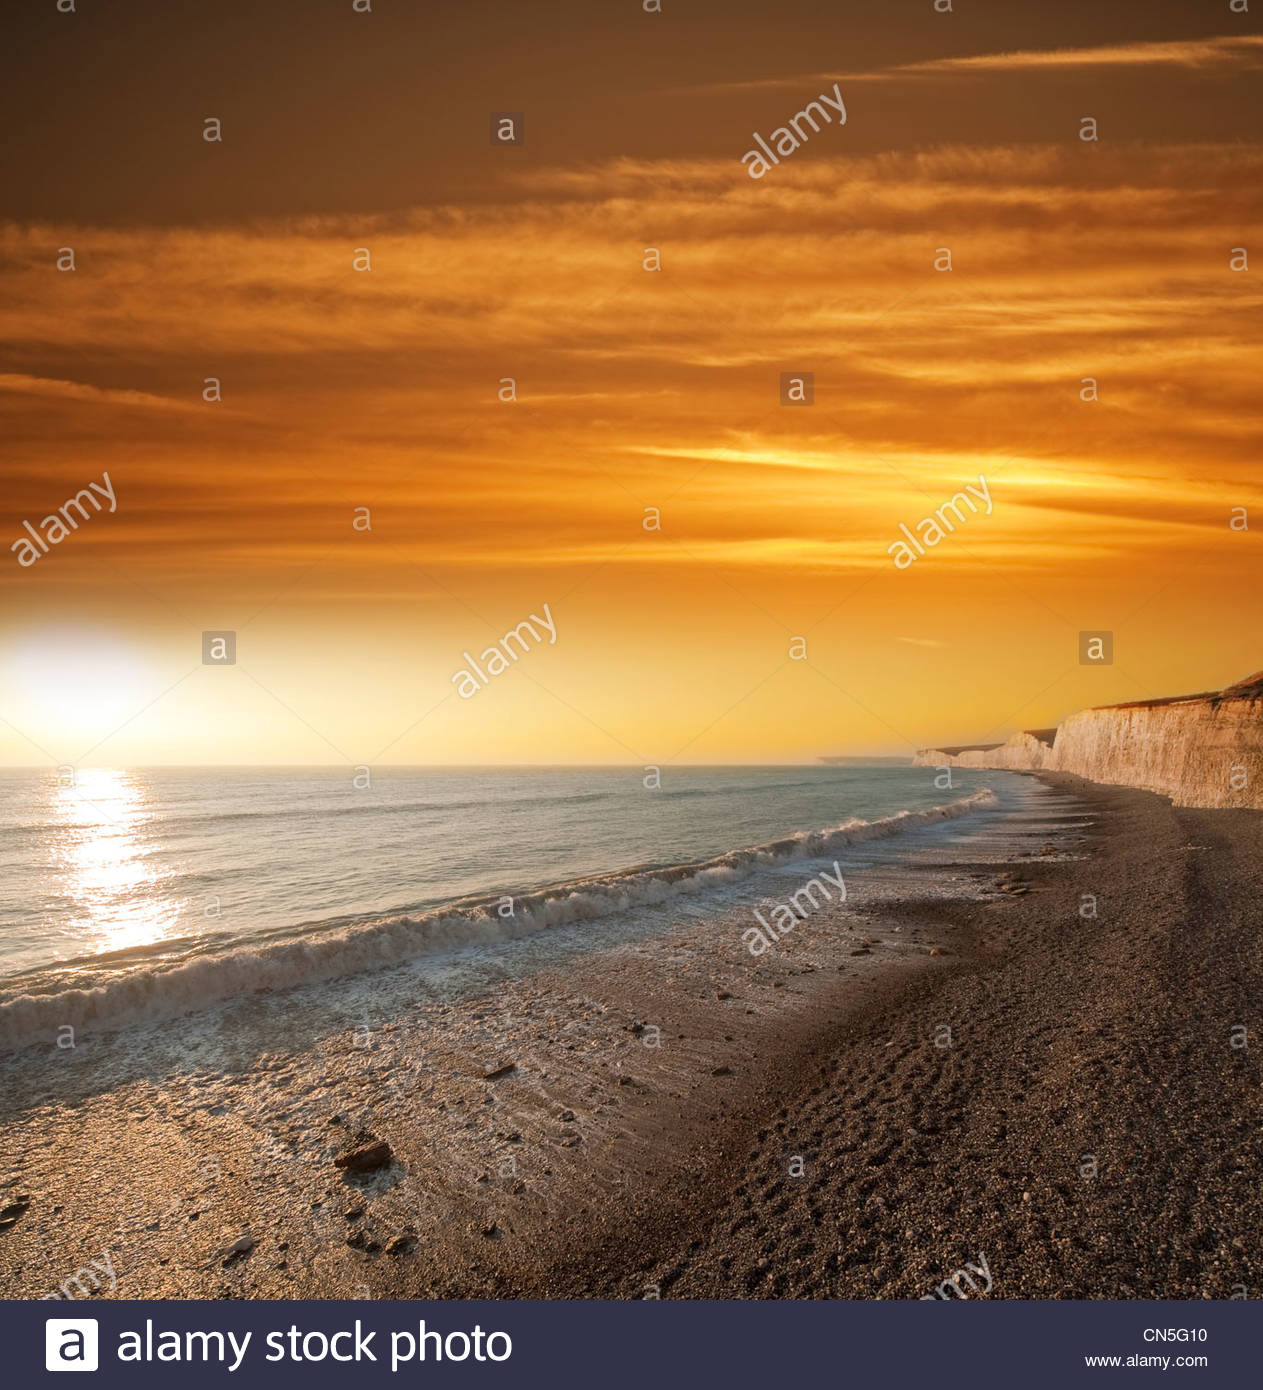 chalk-sea-cliffs-and-setting-sun-with-big-waves-on-a-shingle-beach-CN5G10.jpg